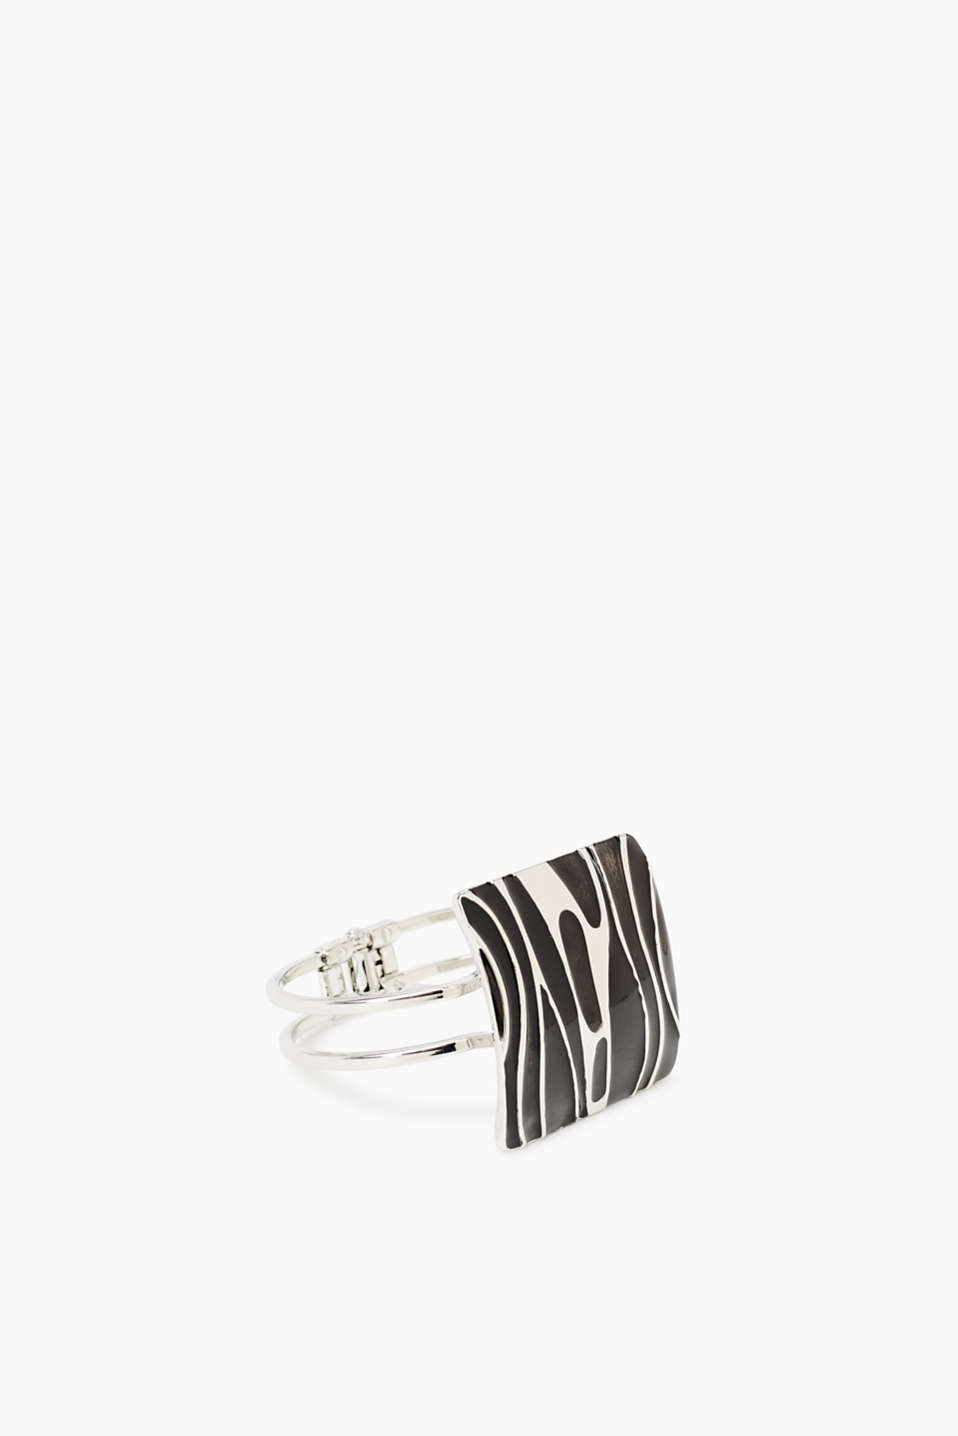 Esprit - Metal statement bangle